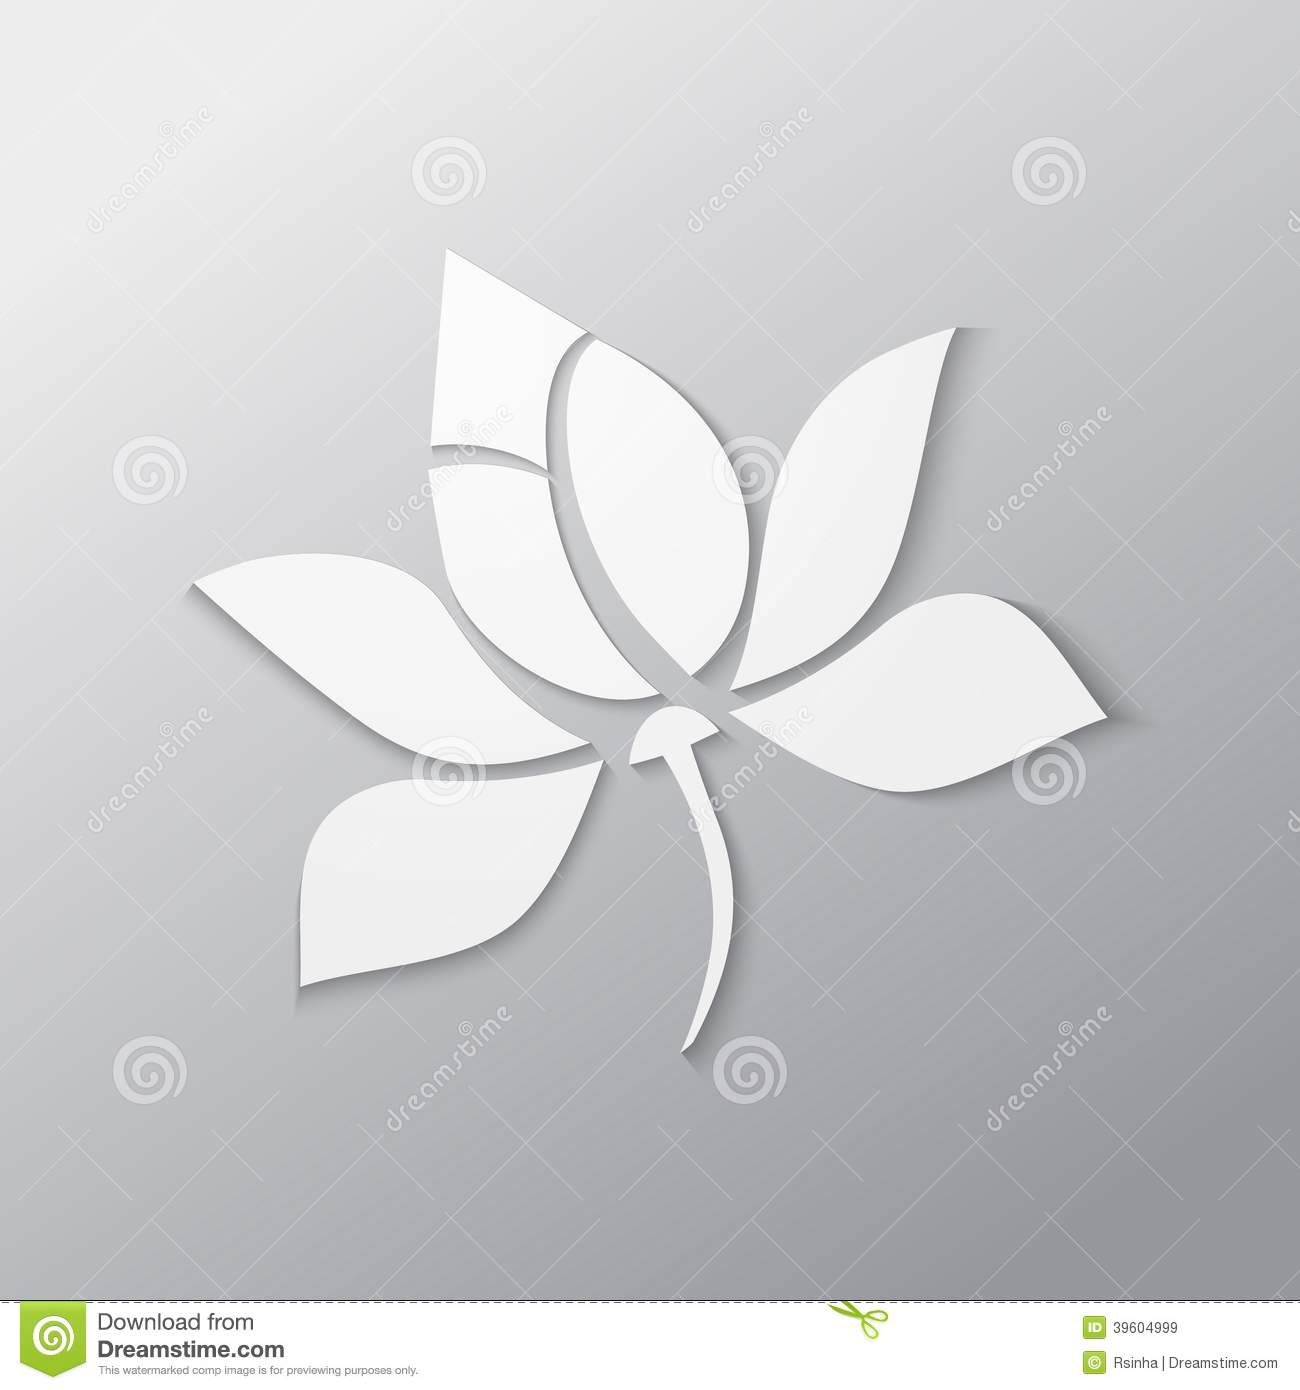 Lotus Flower Stock Vector Illustration Of Floral Decoration 39604999